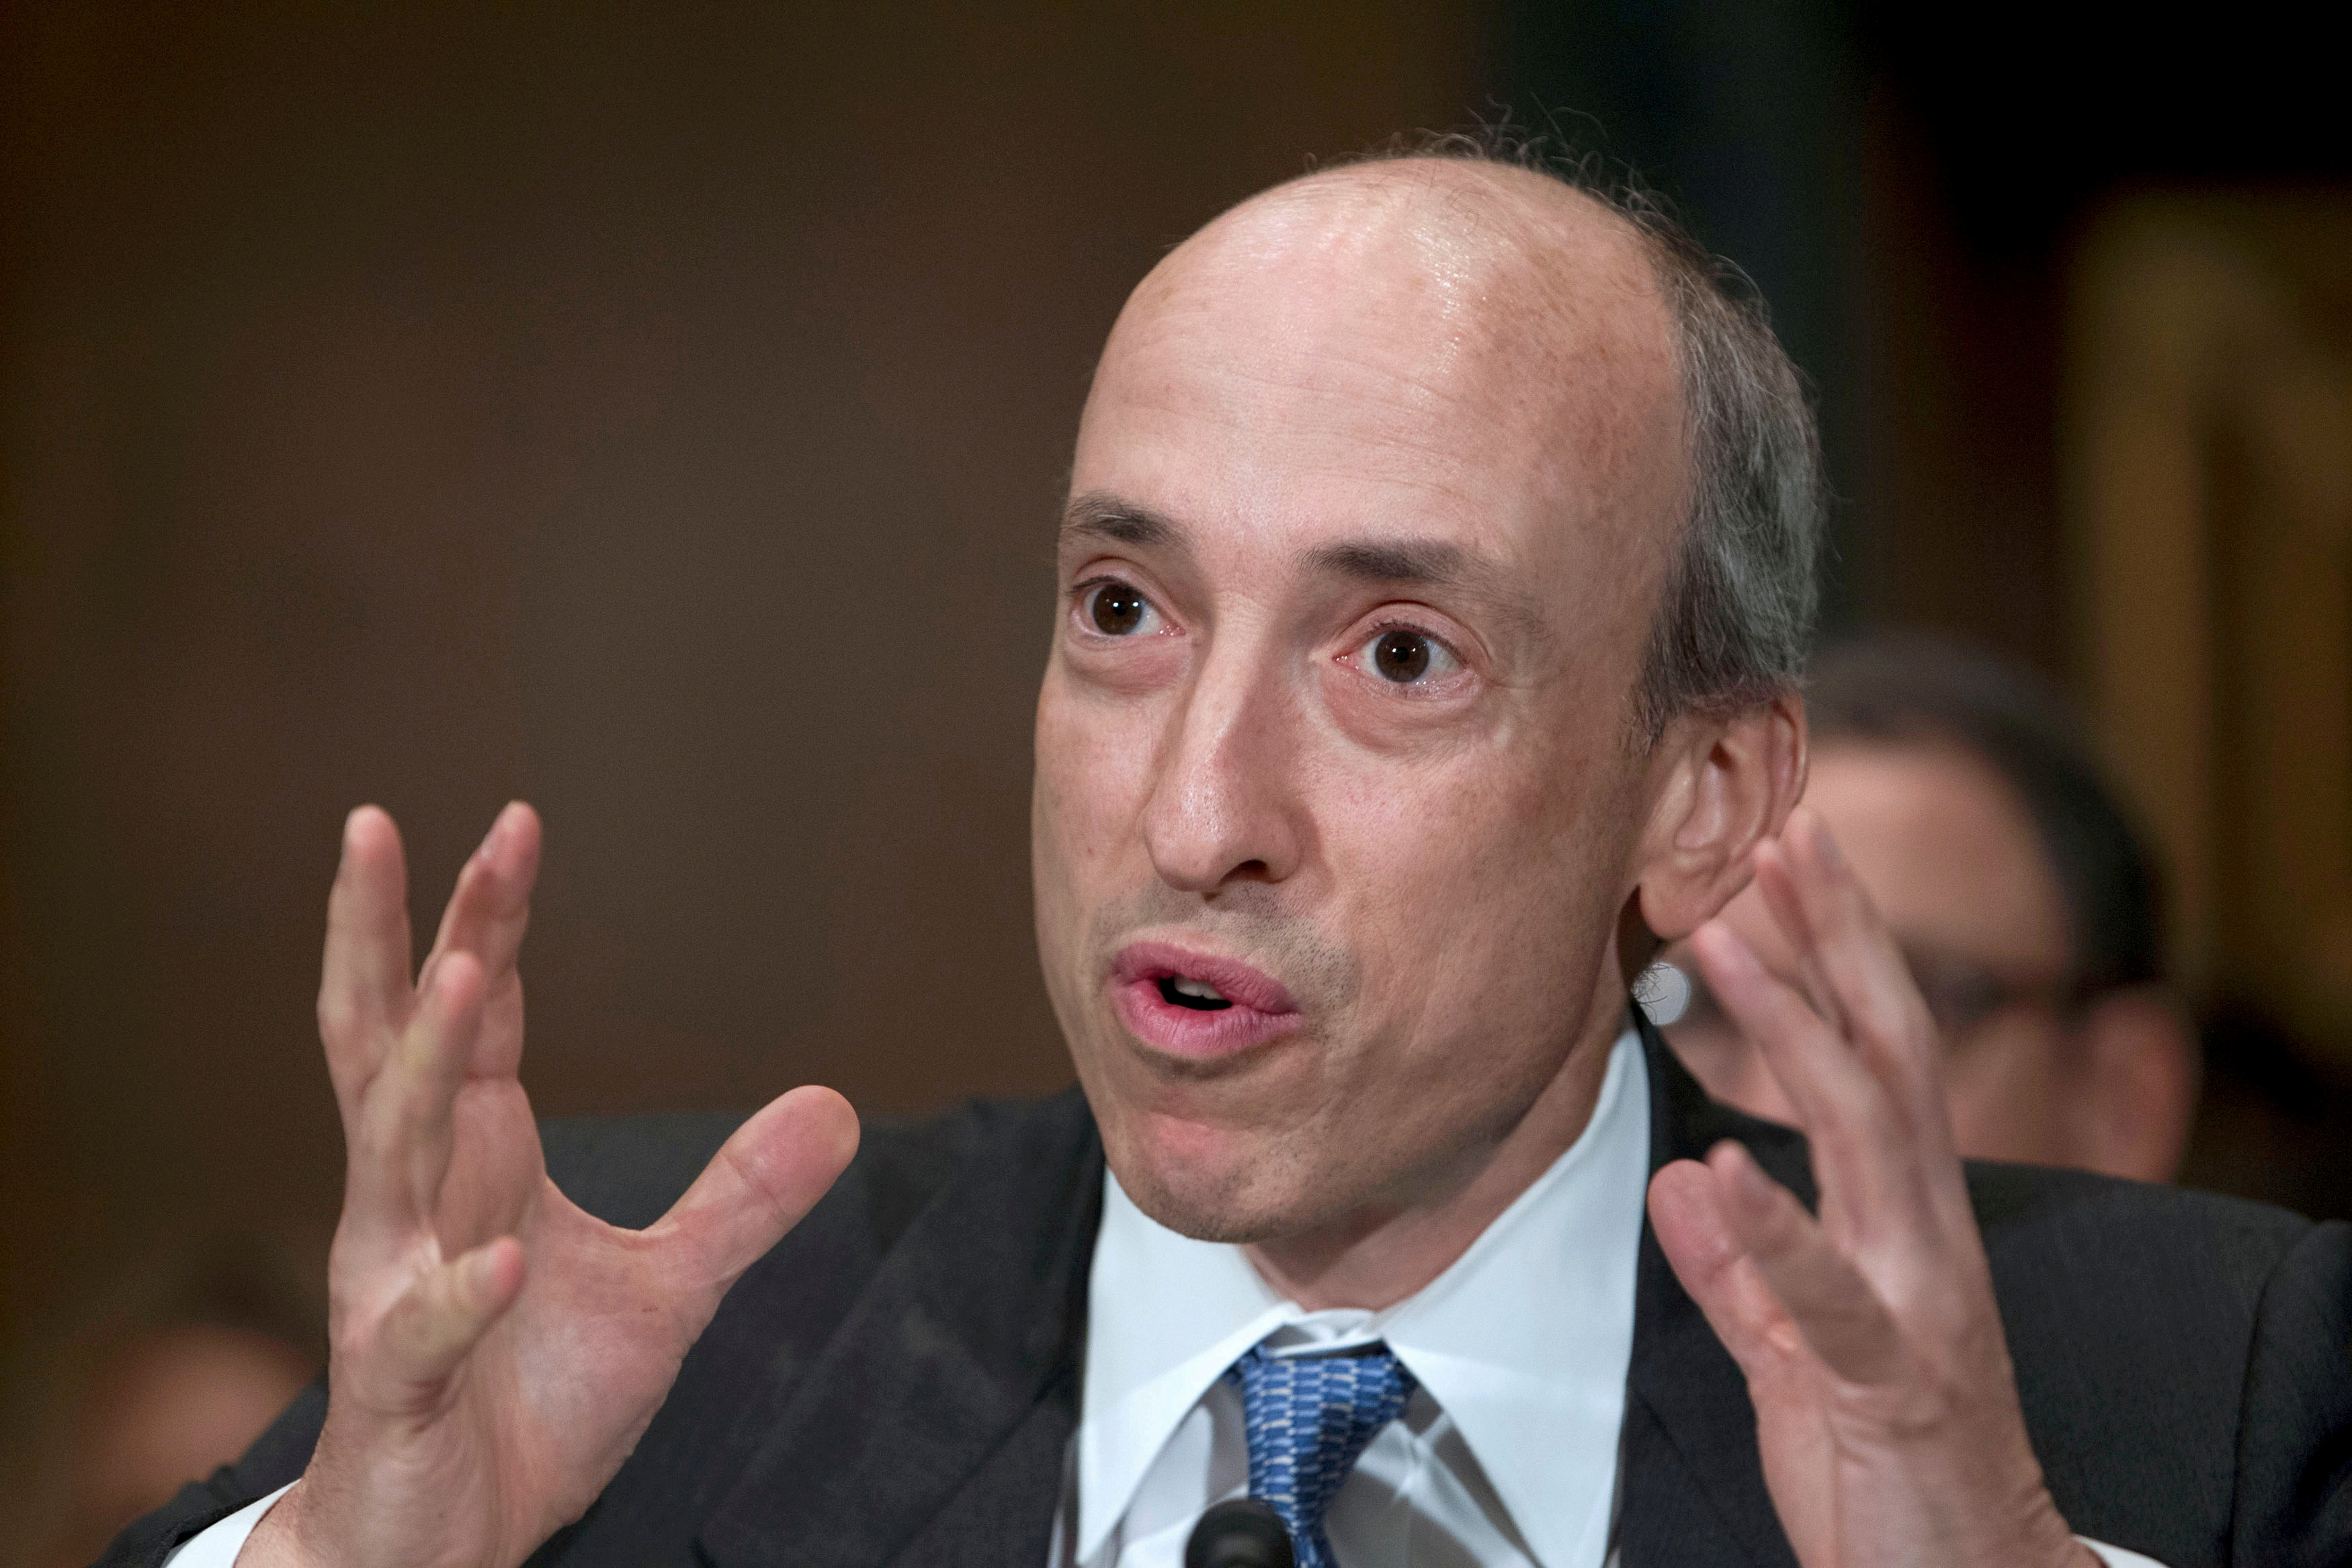 Gary Gensler, who at the time was Commodity Futures Trading Commission chair, testifies at a Senate Banking, Housing and Urban Affairs Committee hearing on Capitol Hill July 30, 2013. REUTERS/Jose Luis Magana